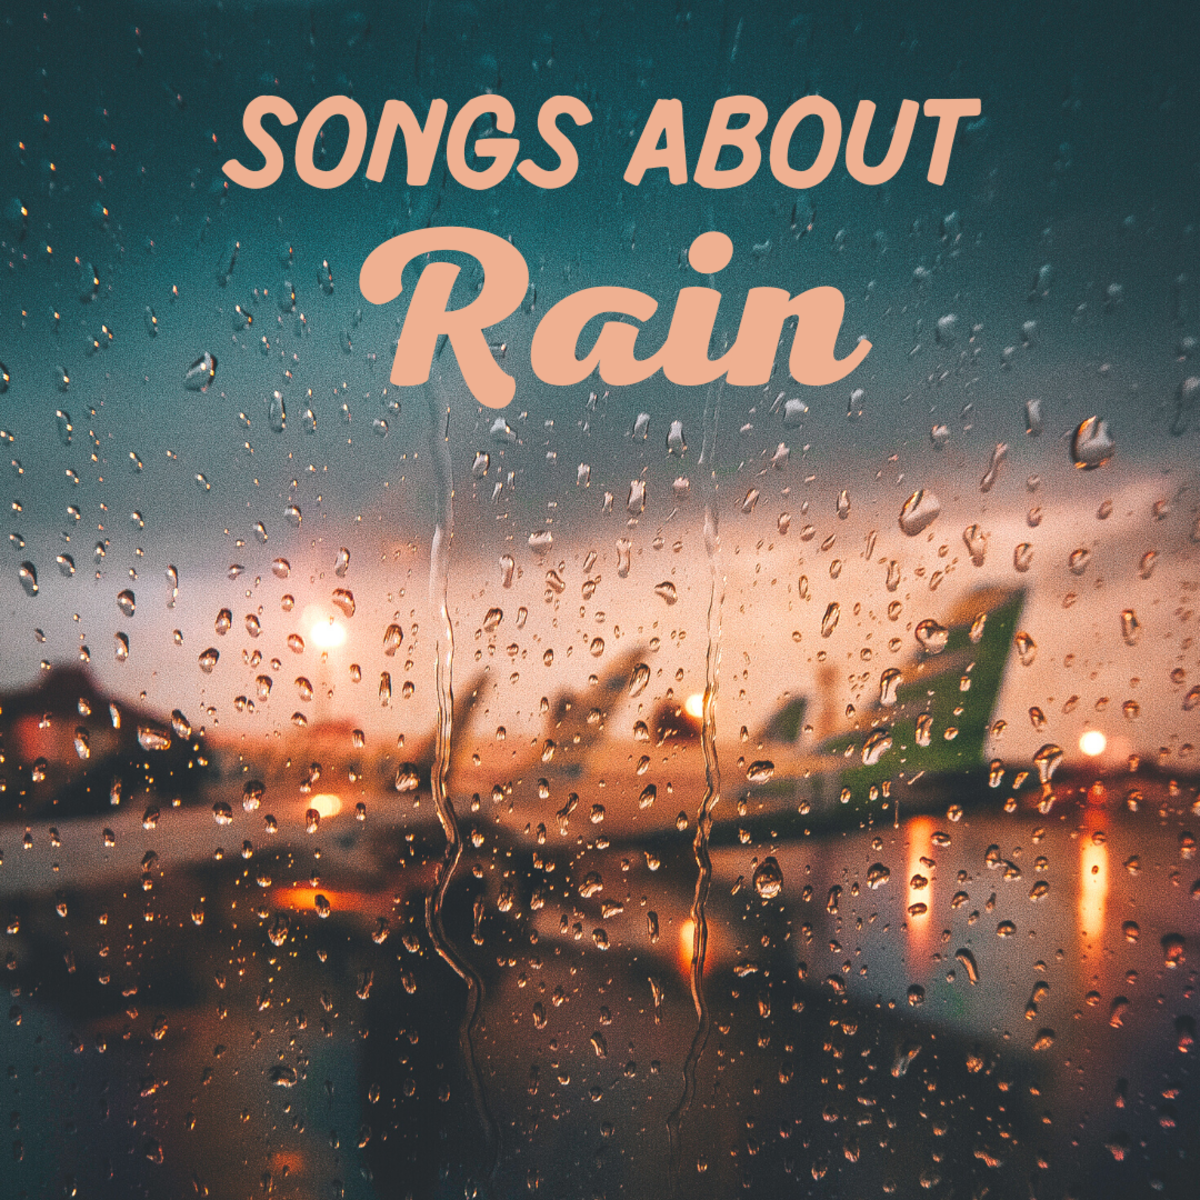 Enjoying a rainy day? Why not listen to a song that suits the mood?